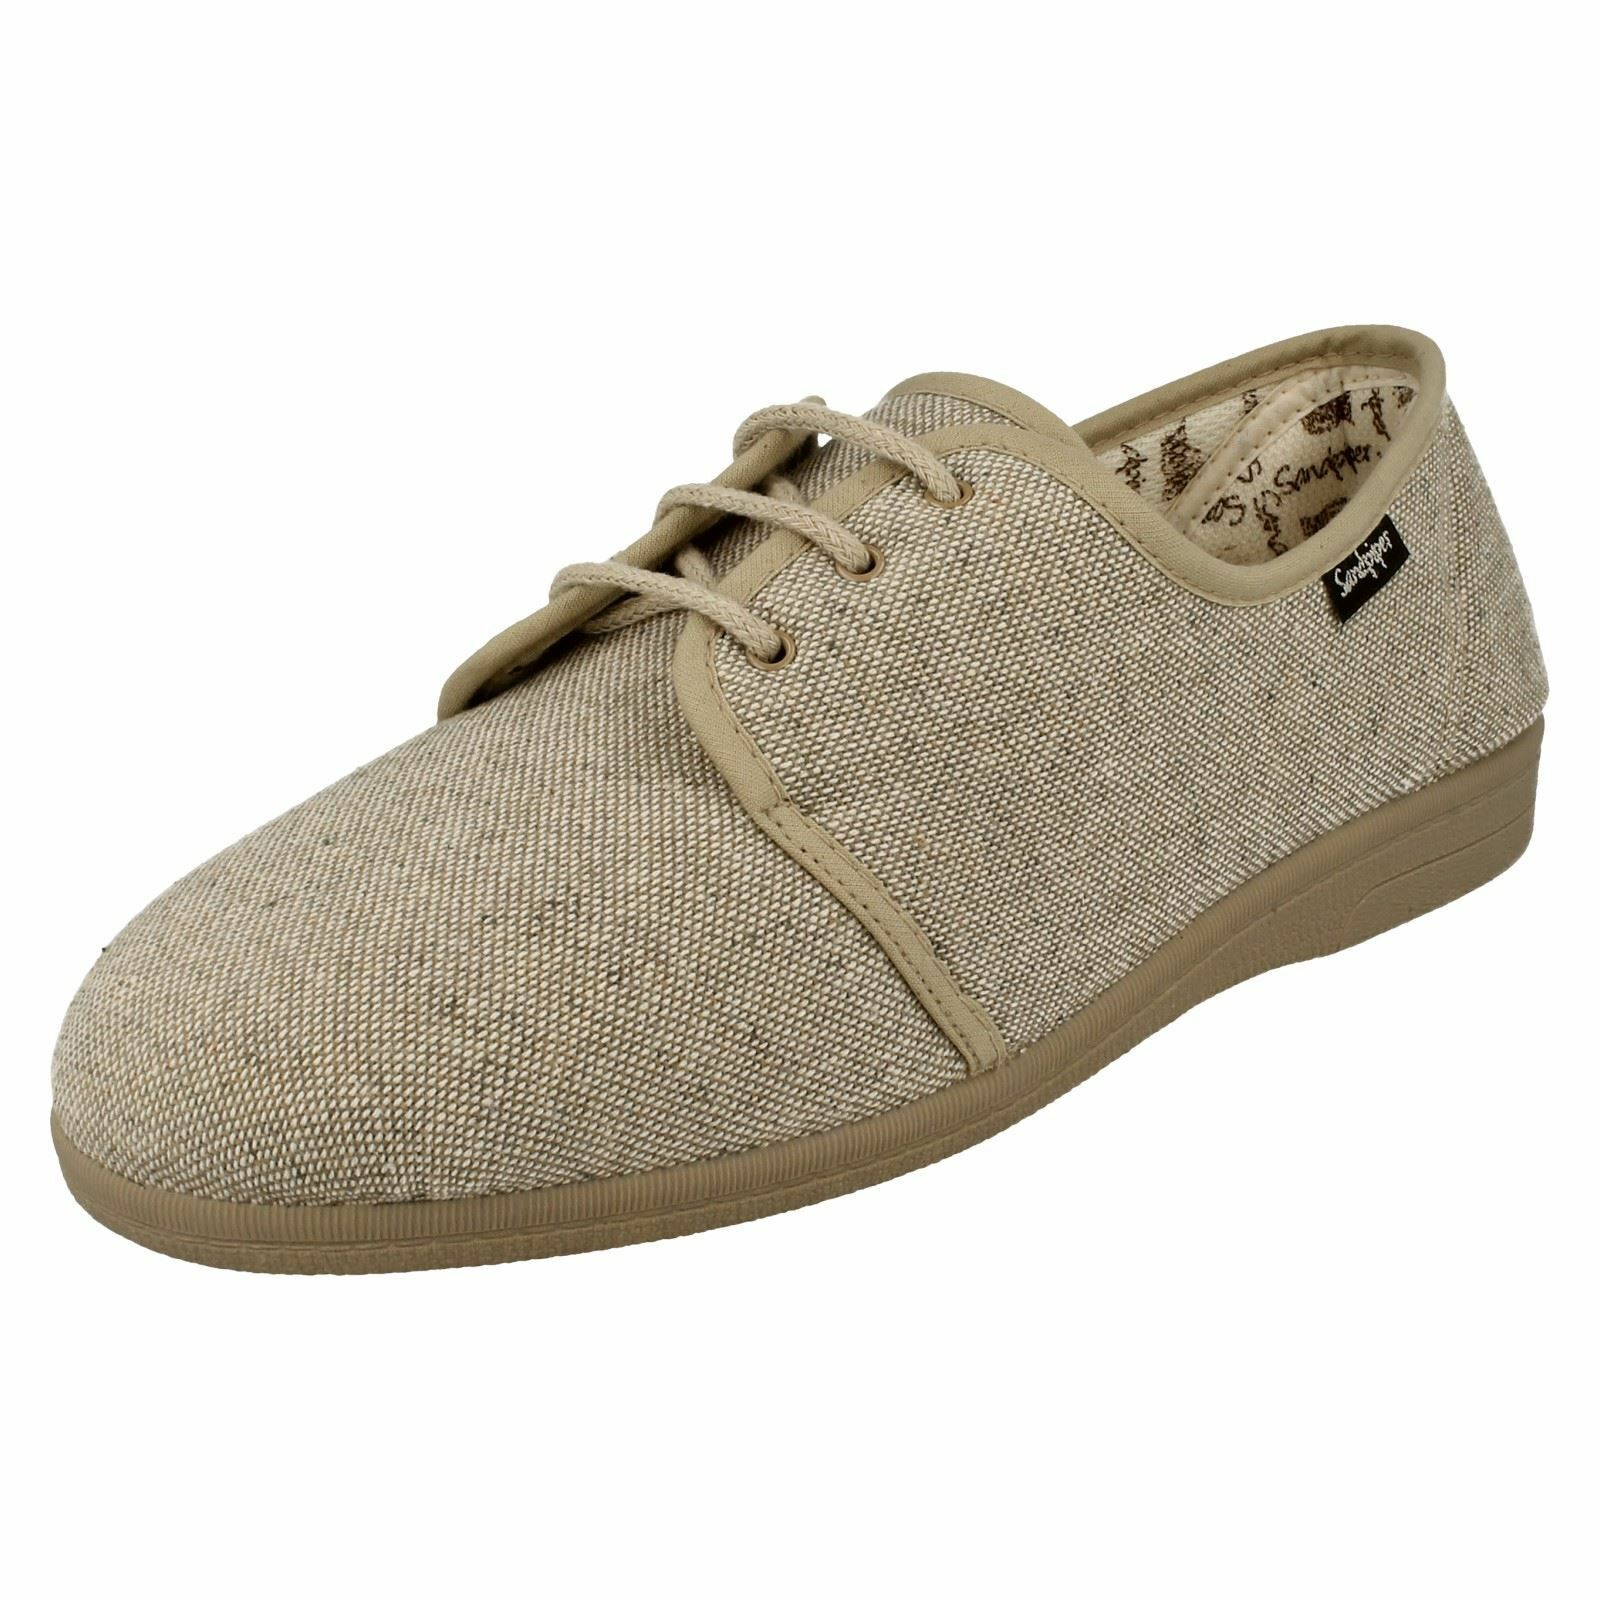 Mens Sandpiper Lace-Up Casual Canvas shoes Kevin